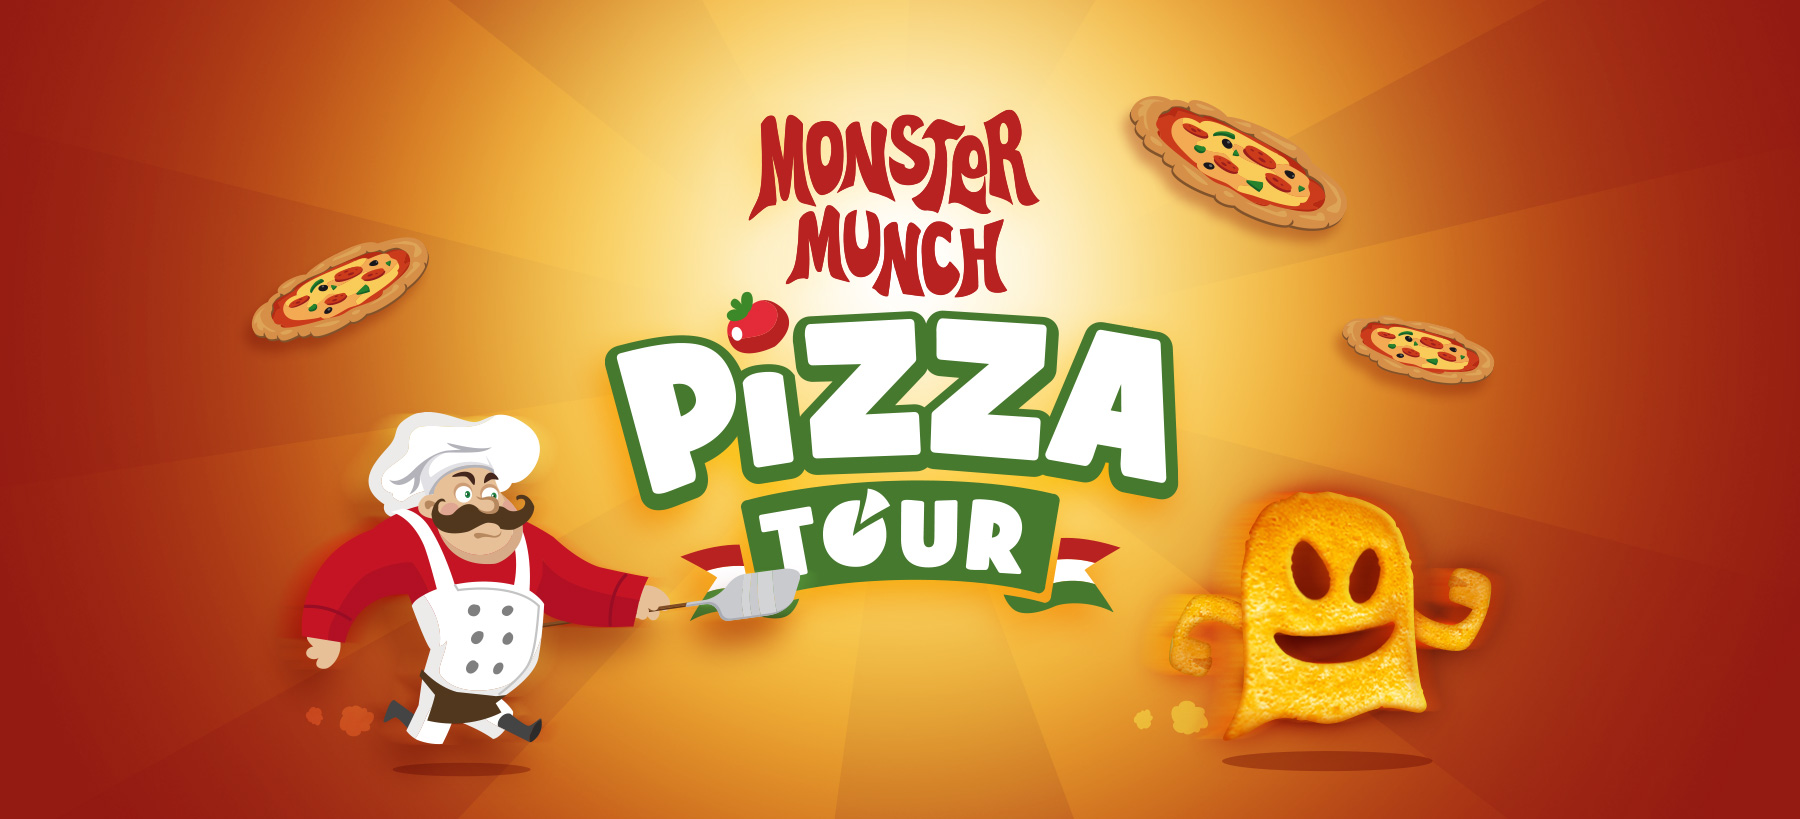 Directeur artistique freelance Portfolio Paris - Monster Munch Pizza Tour